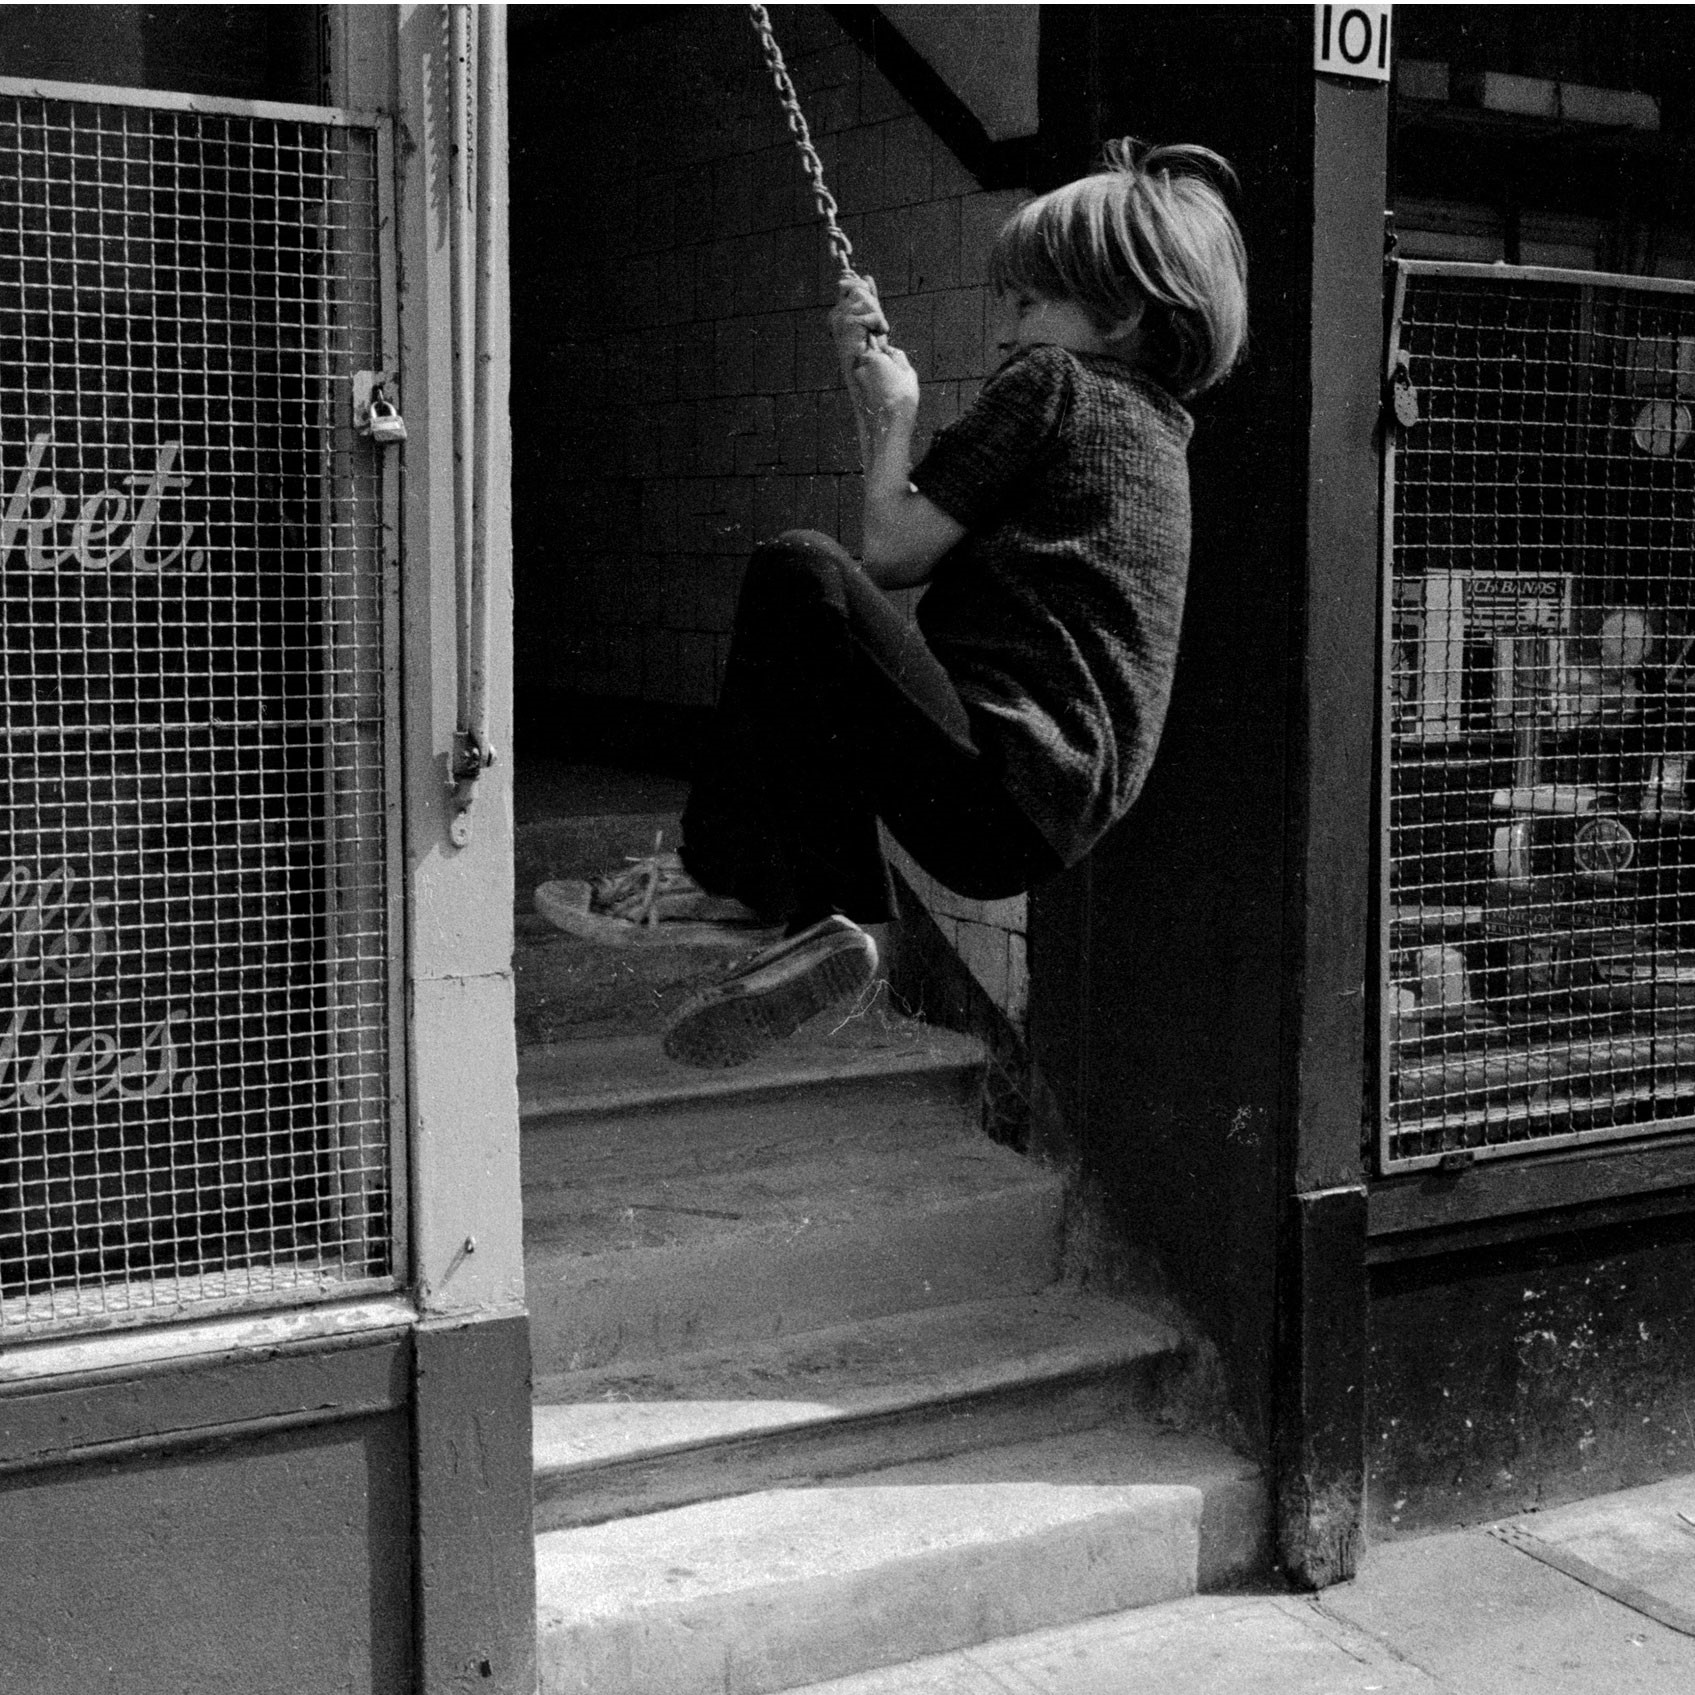 Image of Untitled, from 'Glasgow 1974' (Child on a Swing, Saltmarket) by Hugh Hood